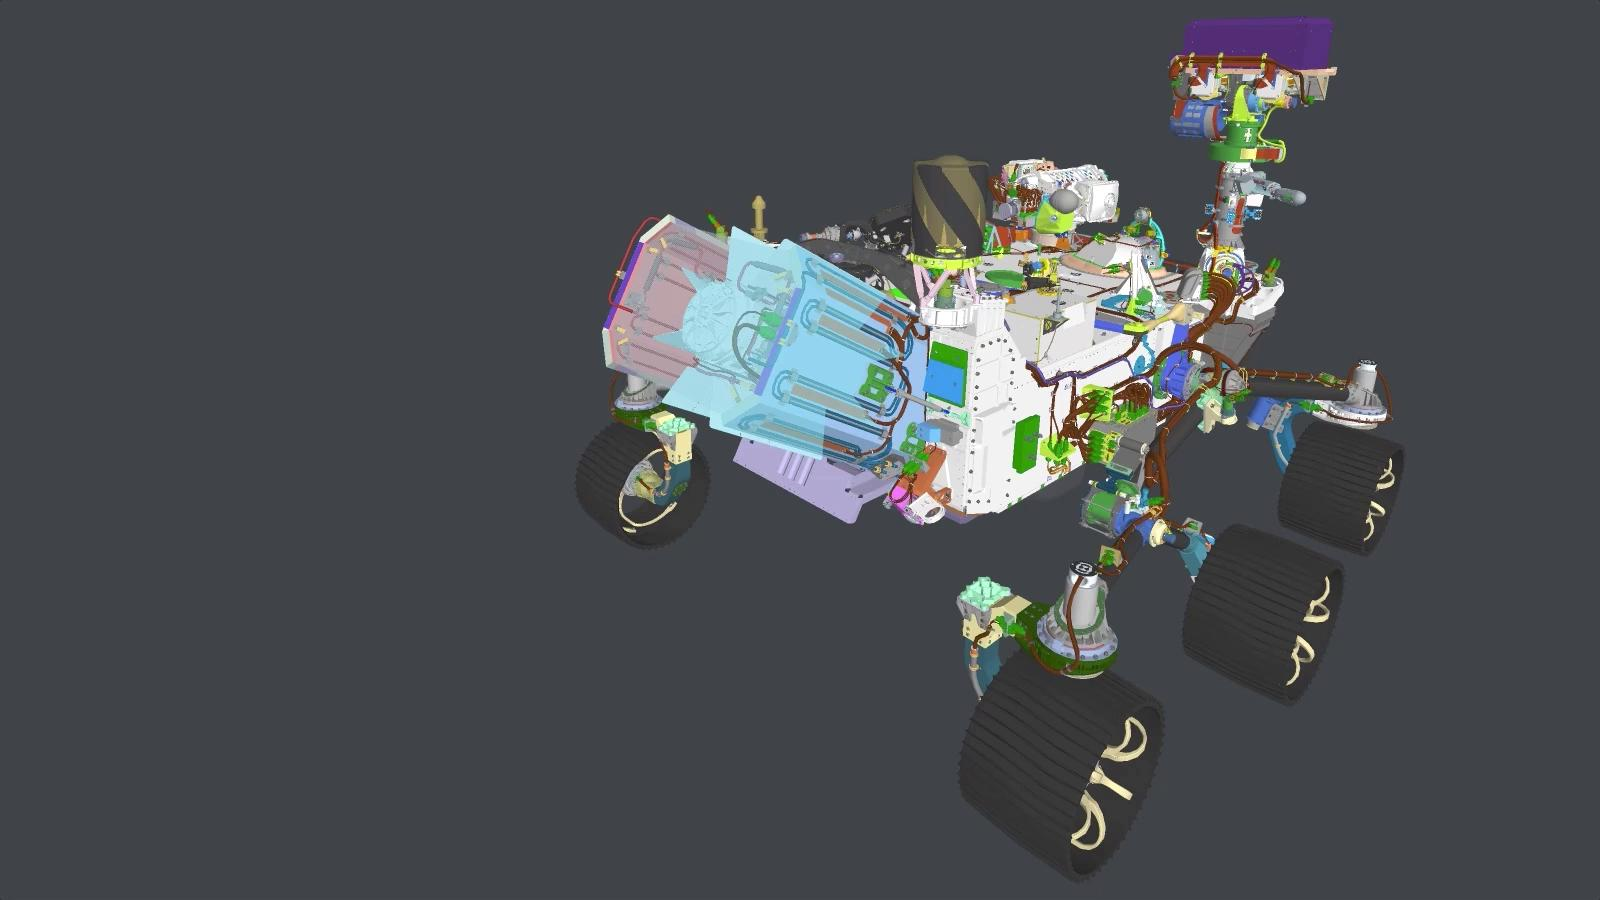 slide 1 - 3D view of Mars Perseverance rover